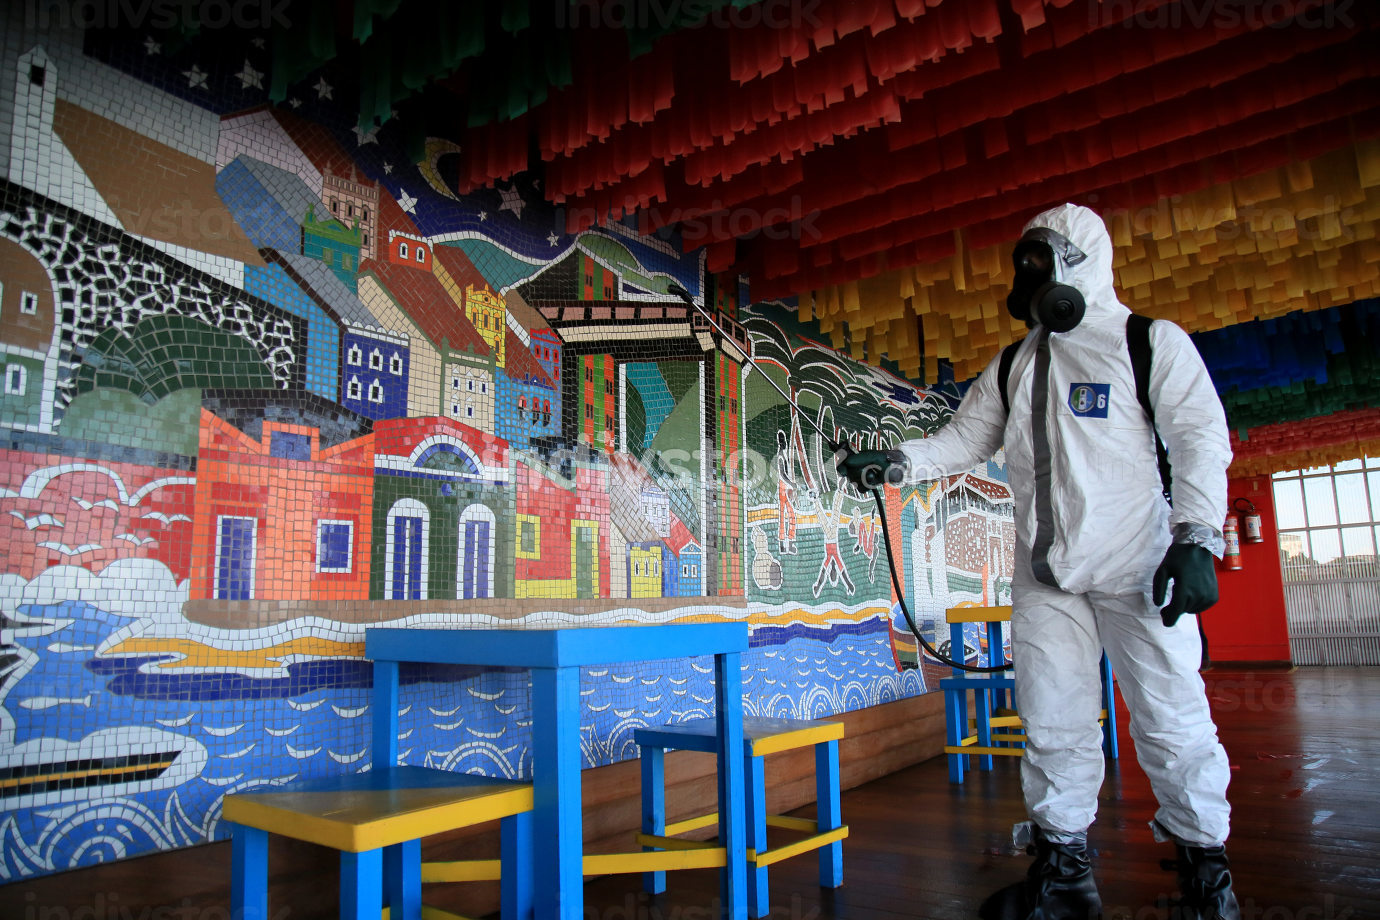 salvador, bahia, brazil-february 10, 2021: military personnel from the Armed Forces perform disinfection at the Casa do Carnaval, in the historic center, in the city of Salvador.